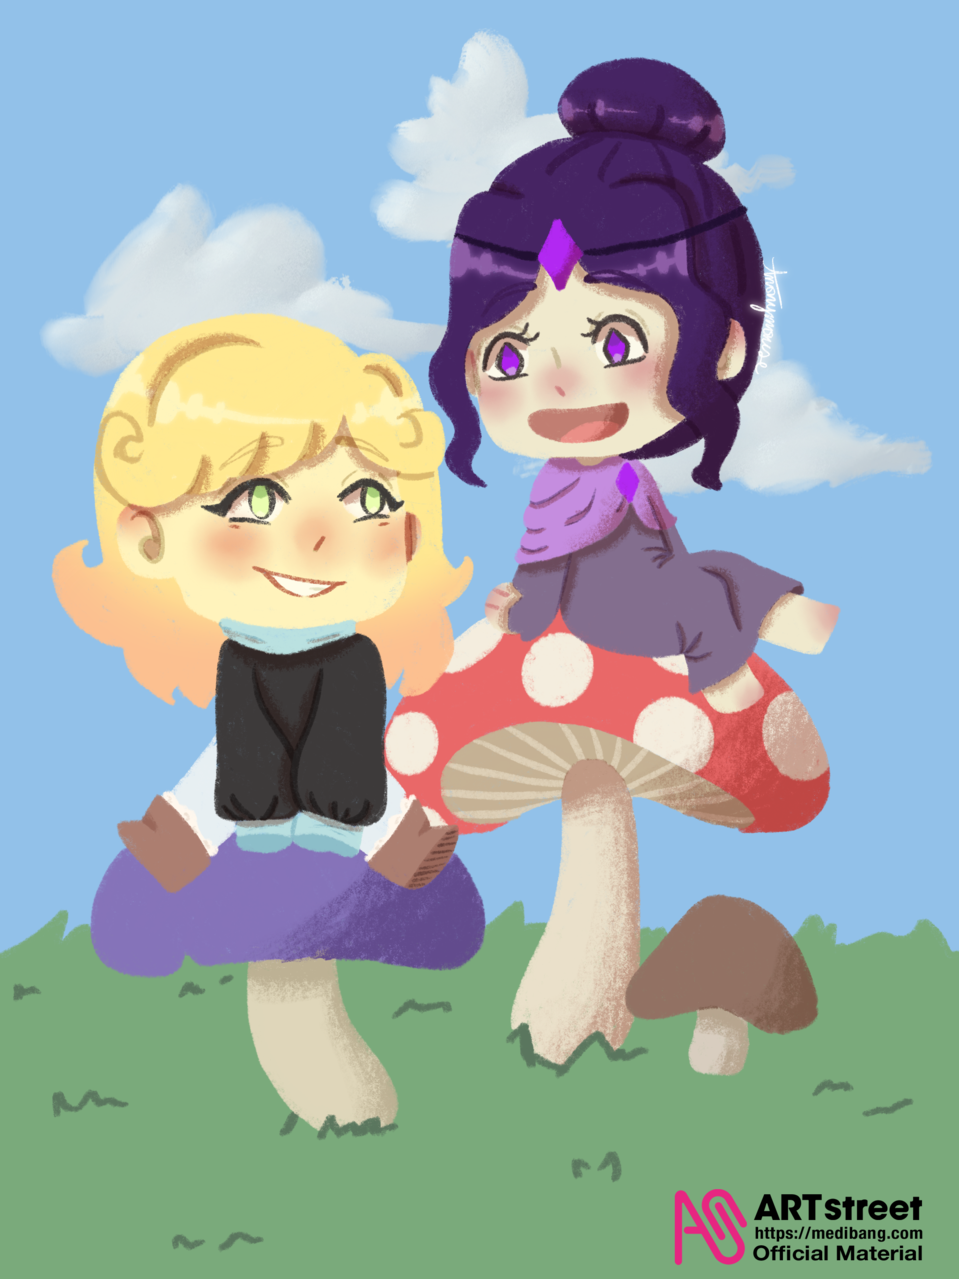 mushroom gorls v2  Illust of AnonymouseSaysHoooi tracedrawing4th Trace&Draw【Official】 mushrooms adopted